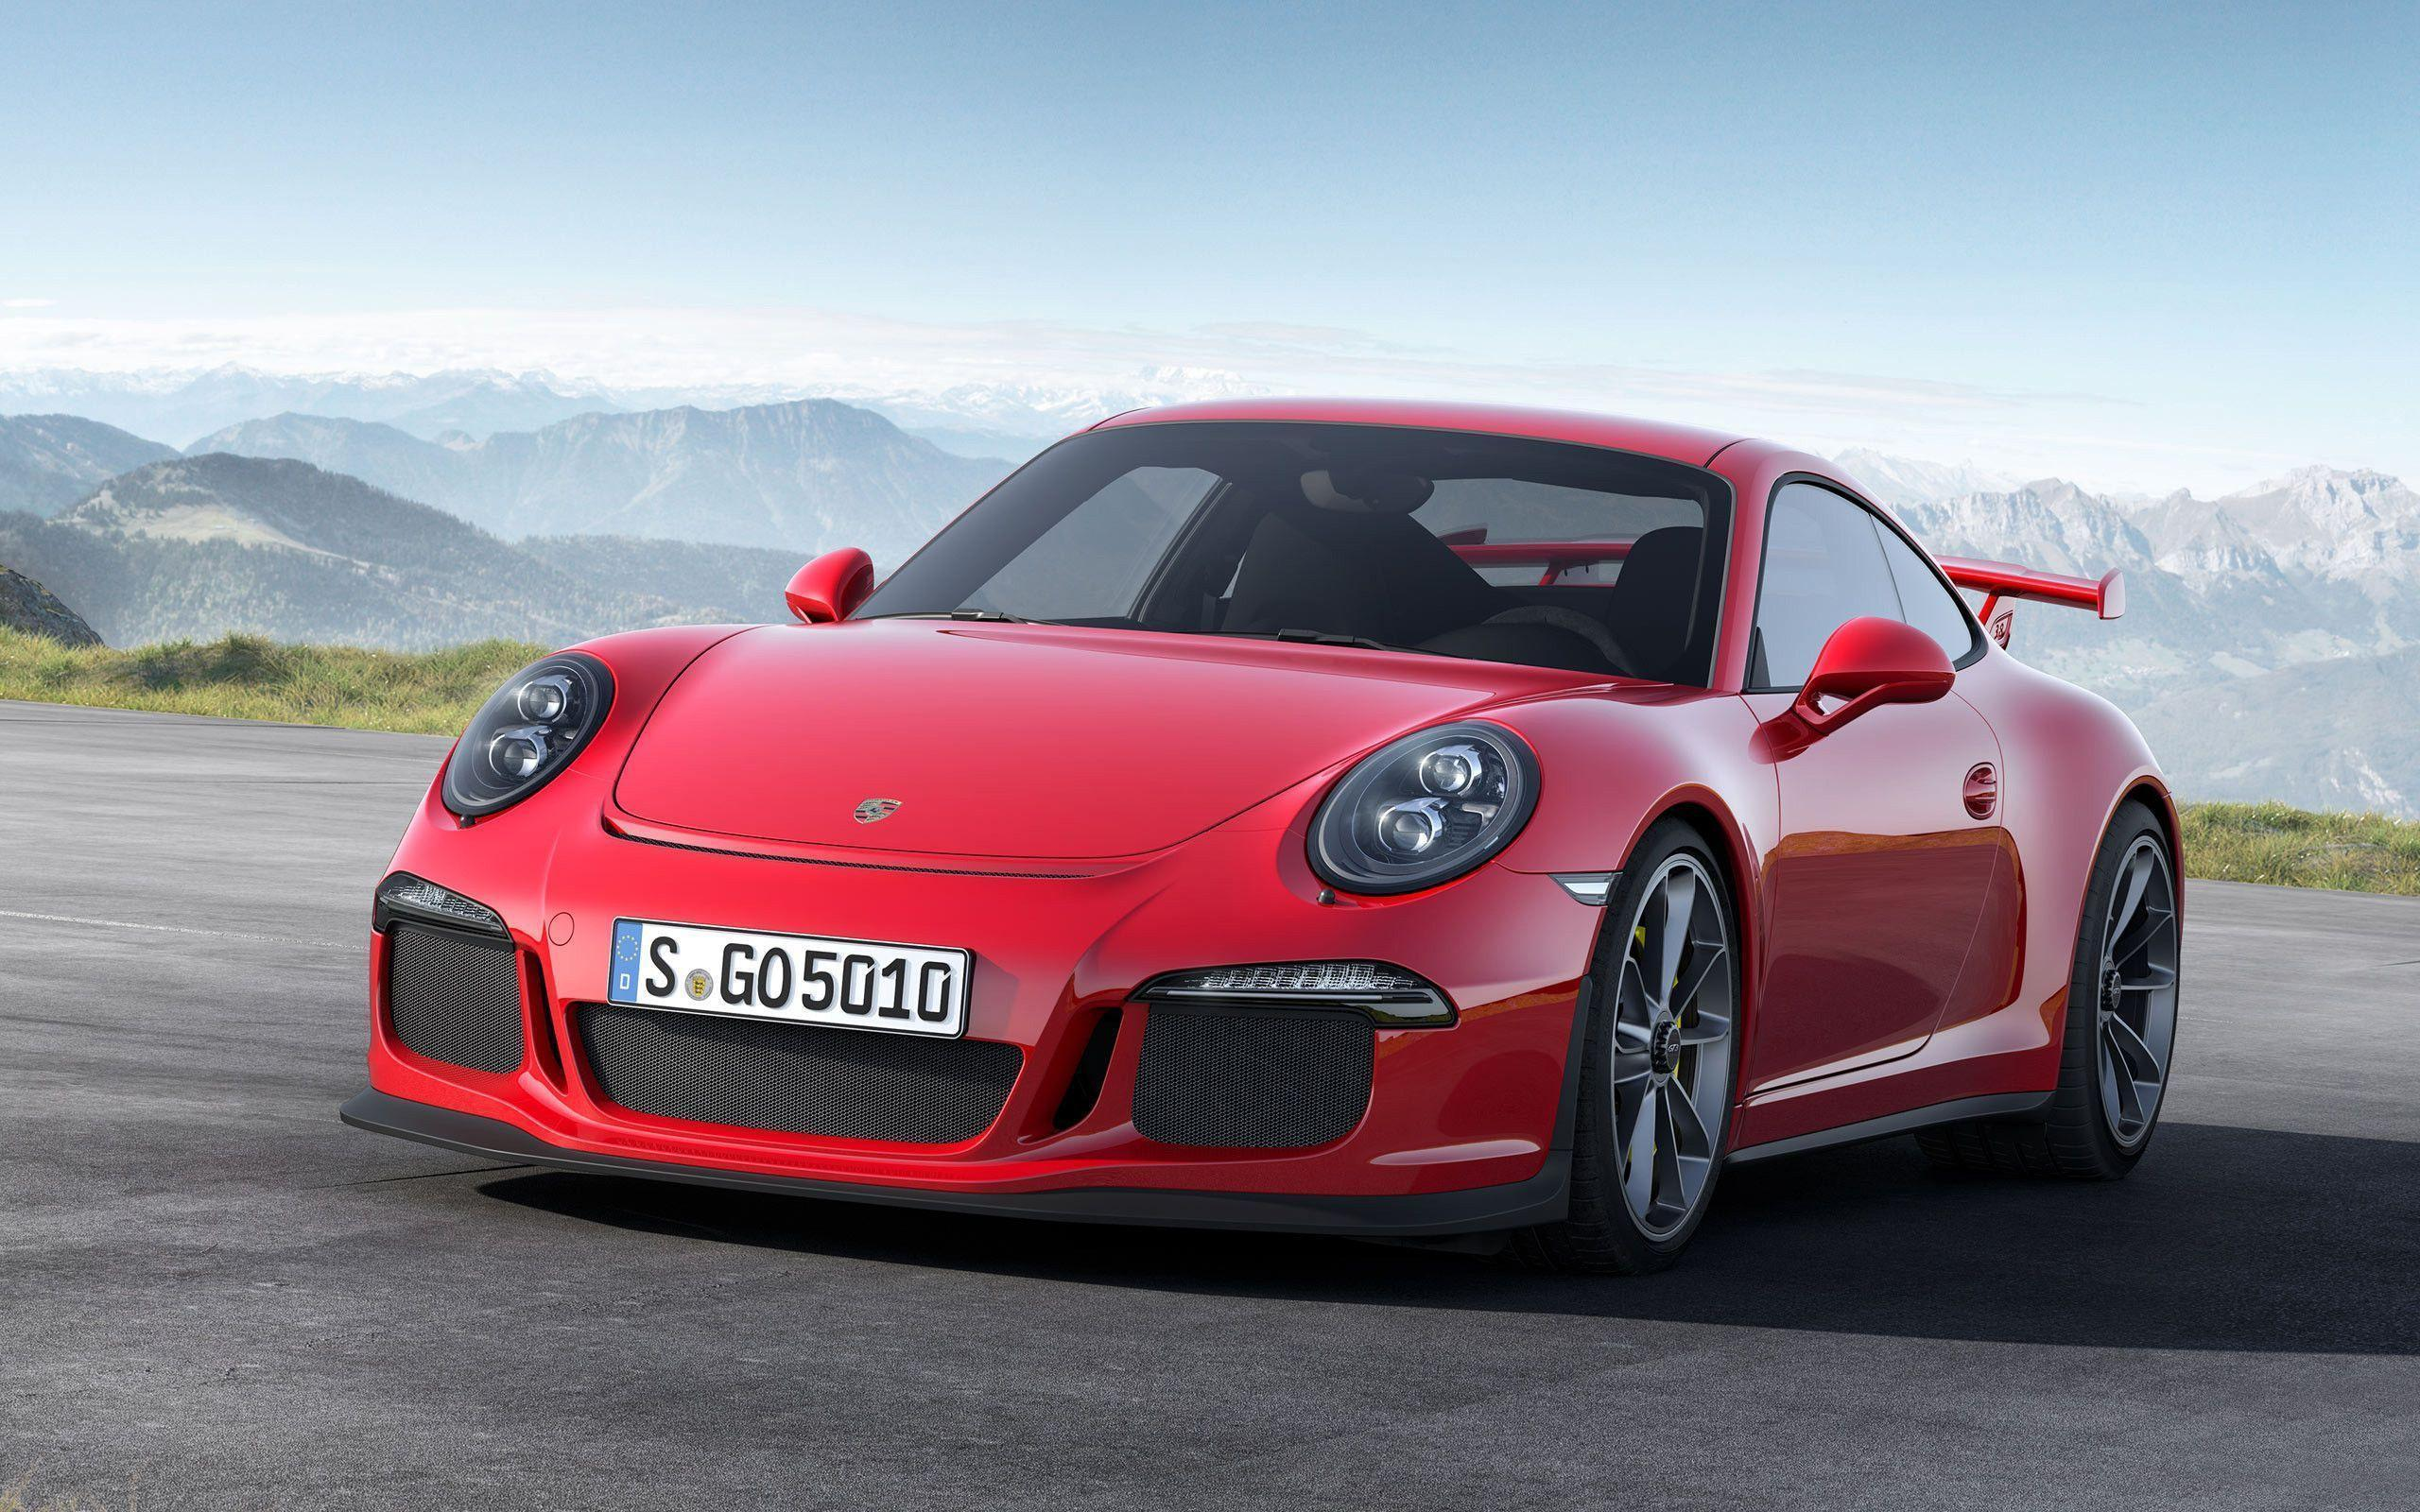 Porsche 911 GT3 2013 Wallpaper | HD Car Wallpapers